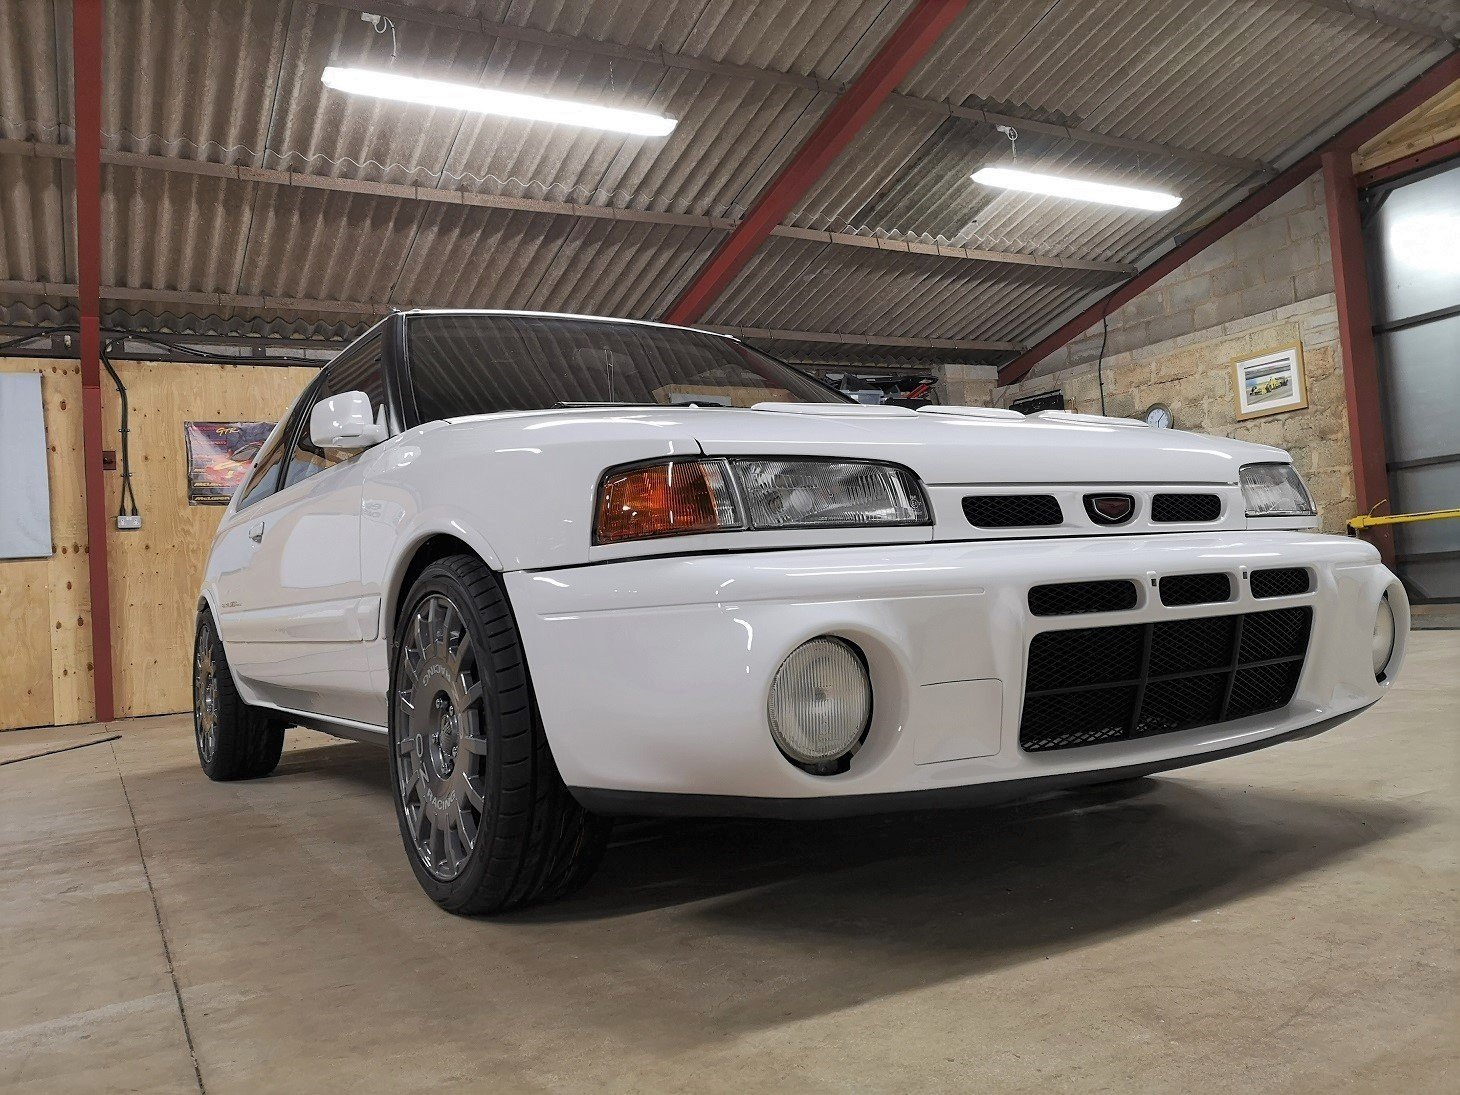 1992 Mazda Familia GTR,45,131 miles from new For Sale (picture 1 of 6)